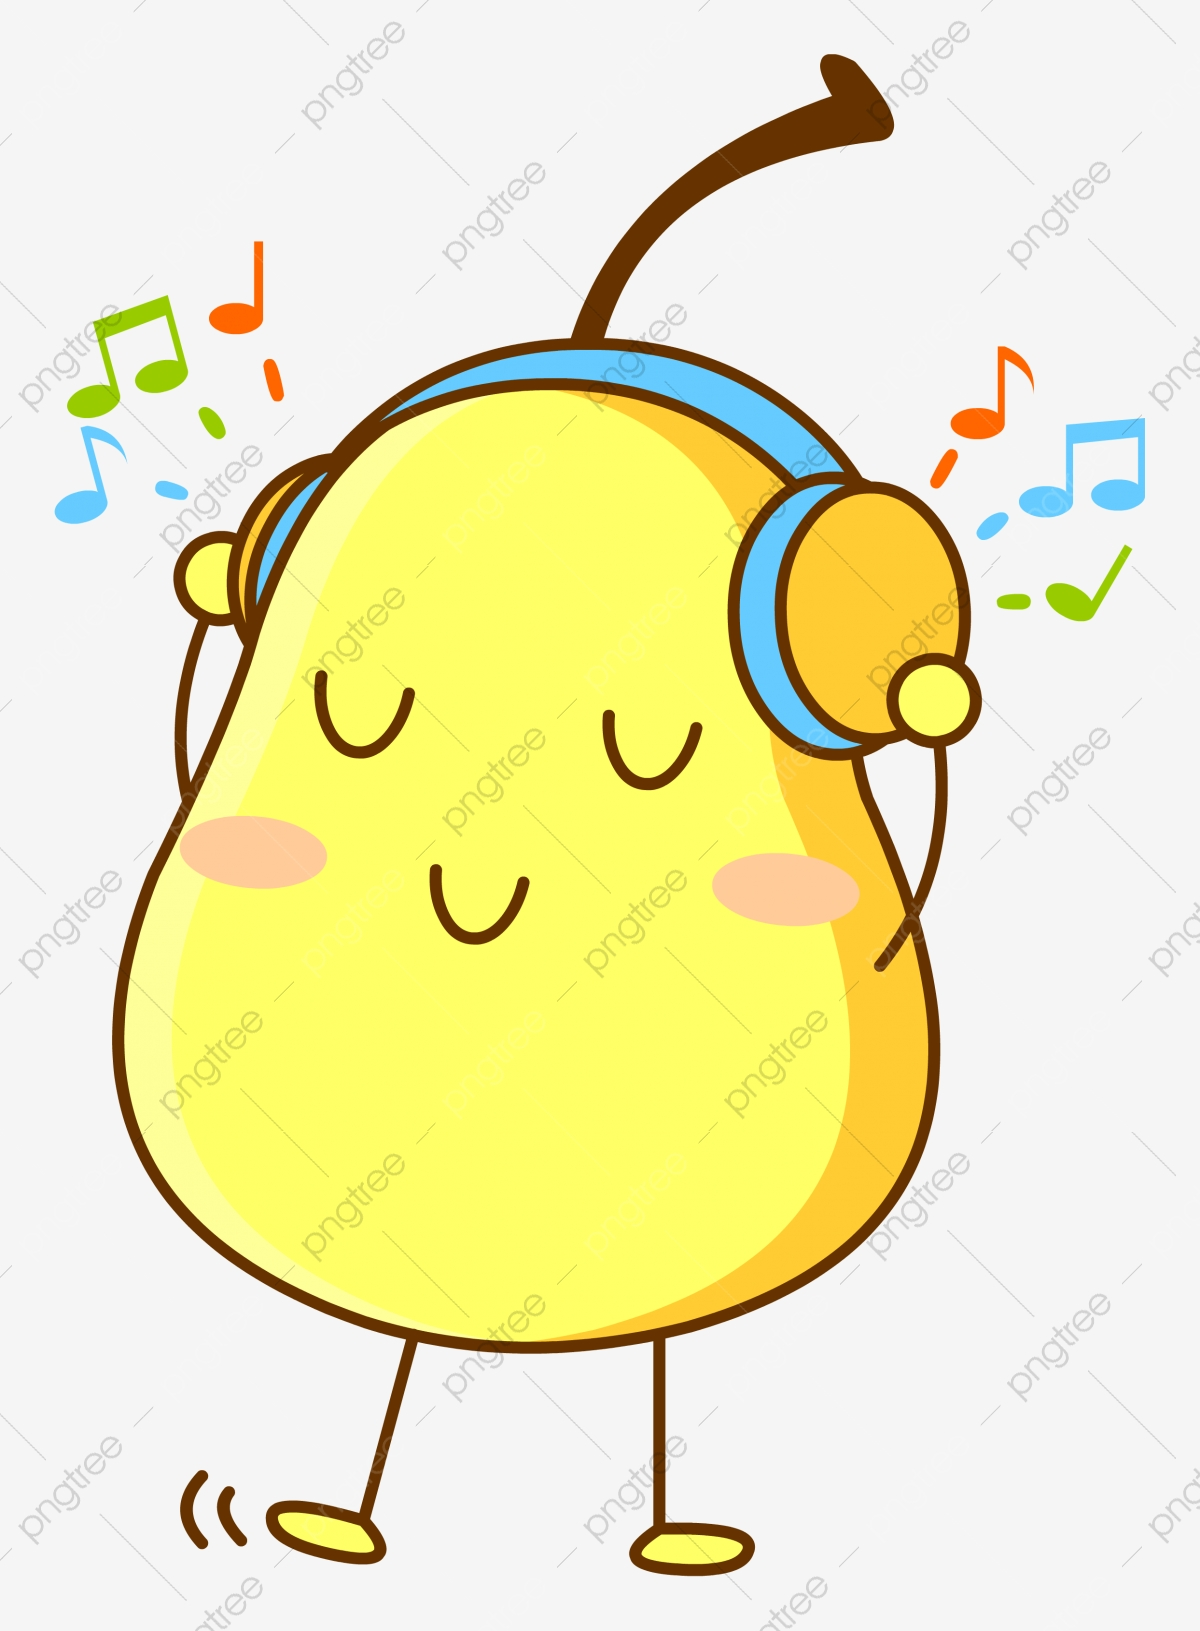 Hearing clipart animated, Hearing animated Transparent FREE for download on  WebStockReview 2020